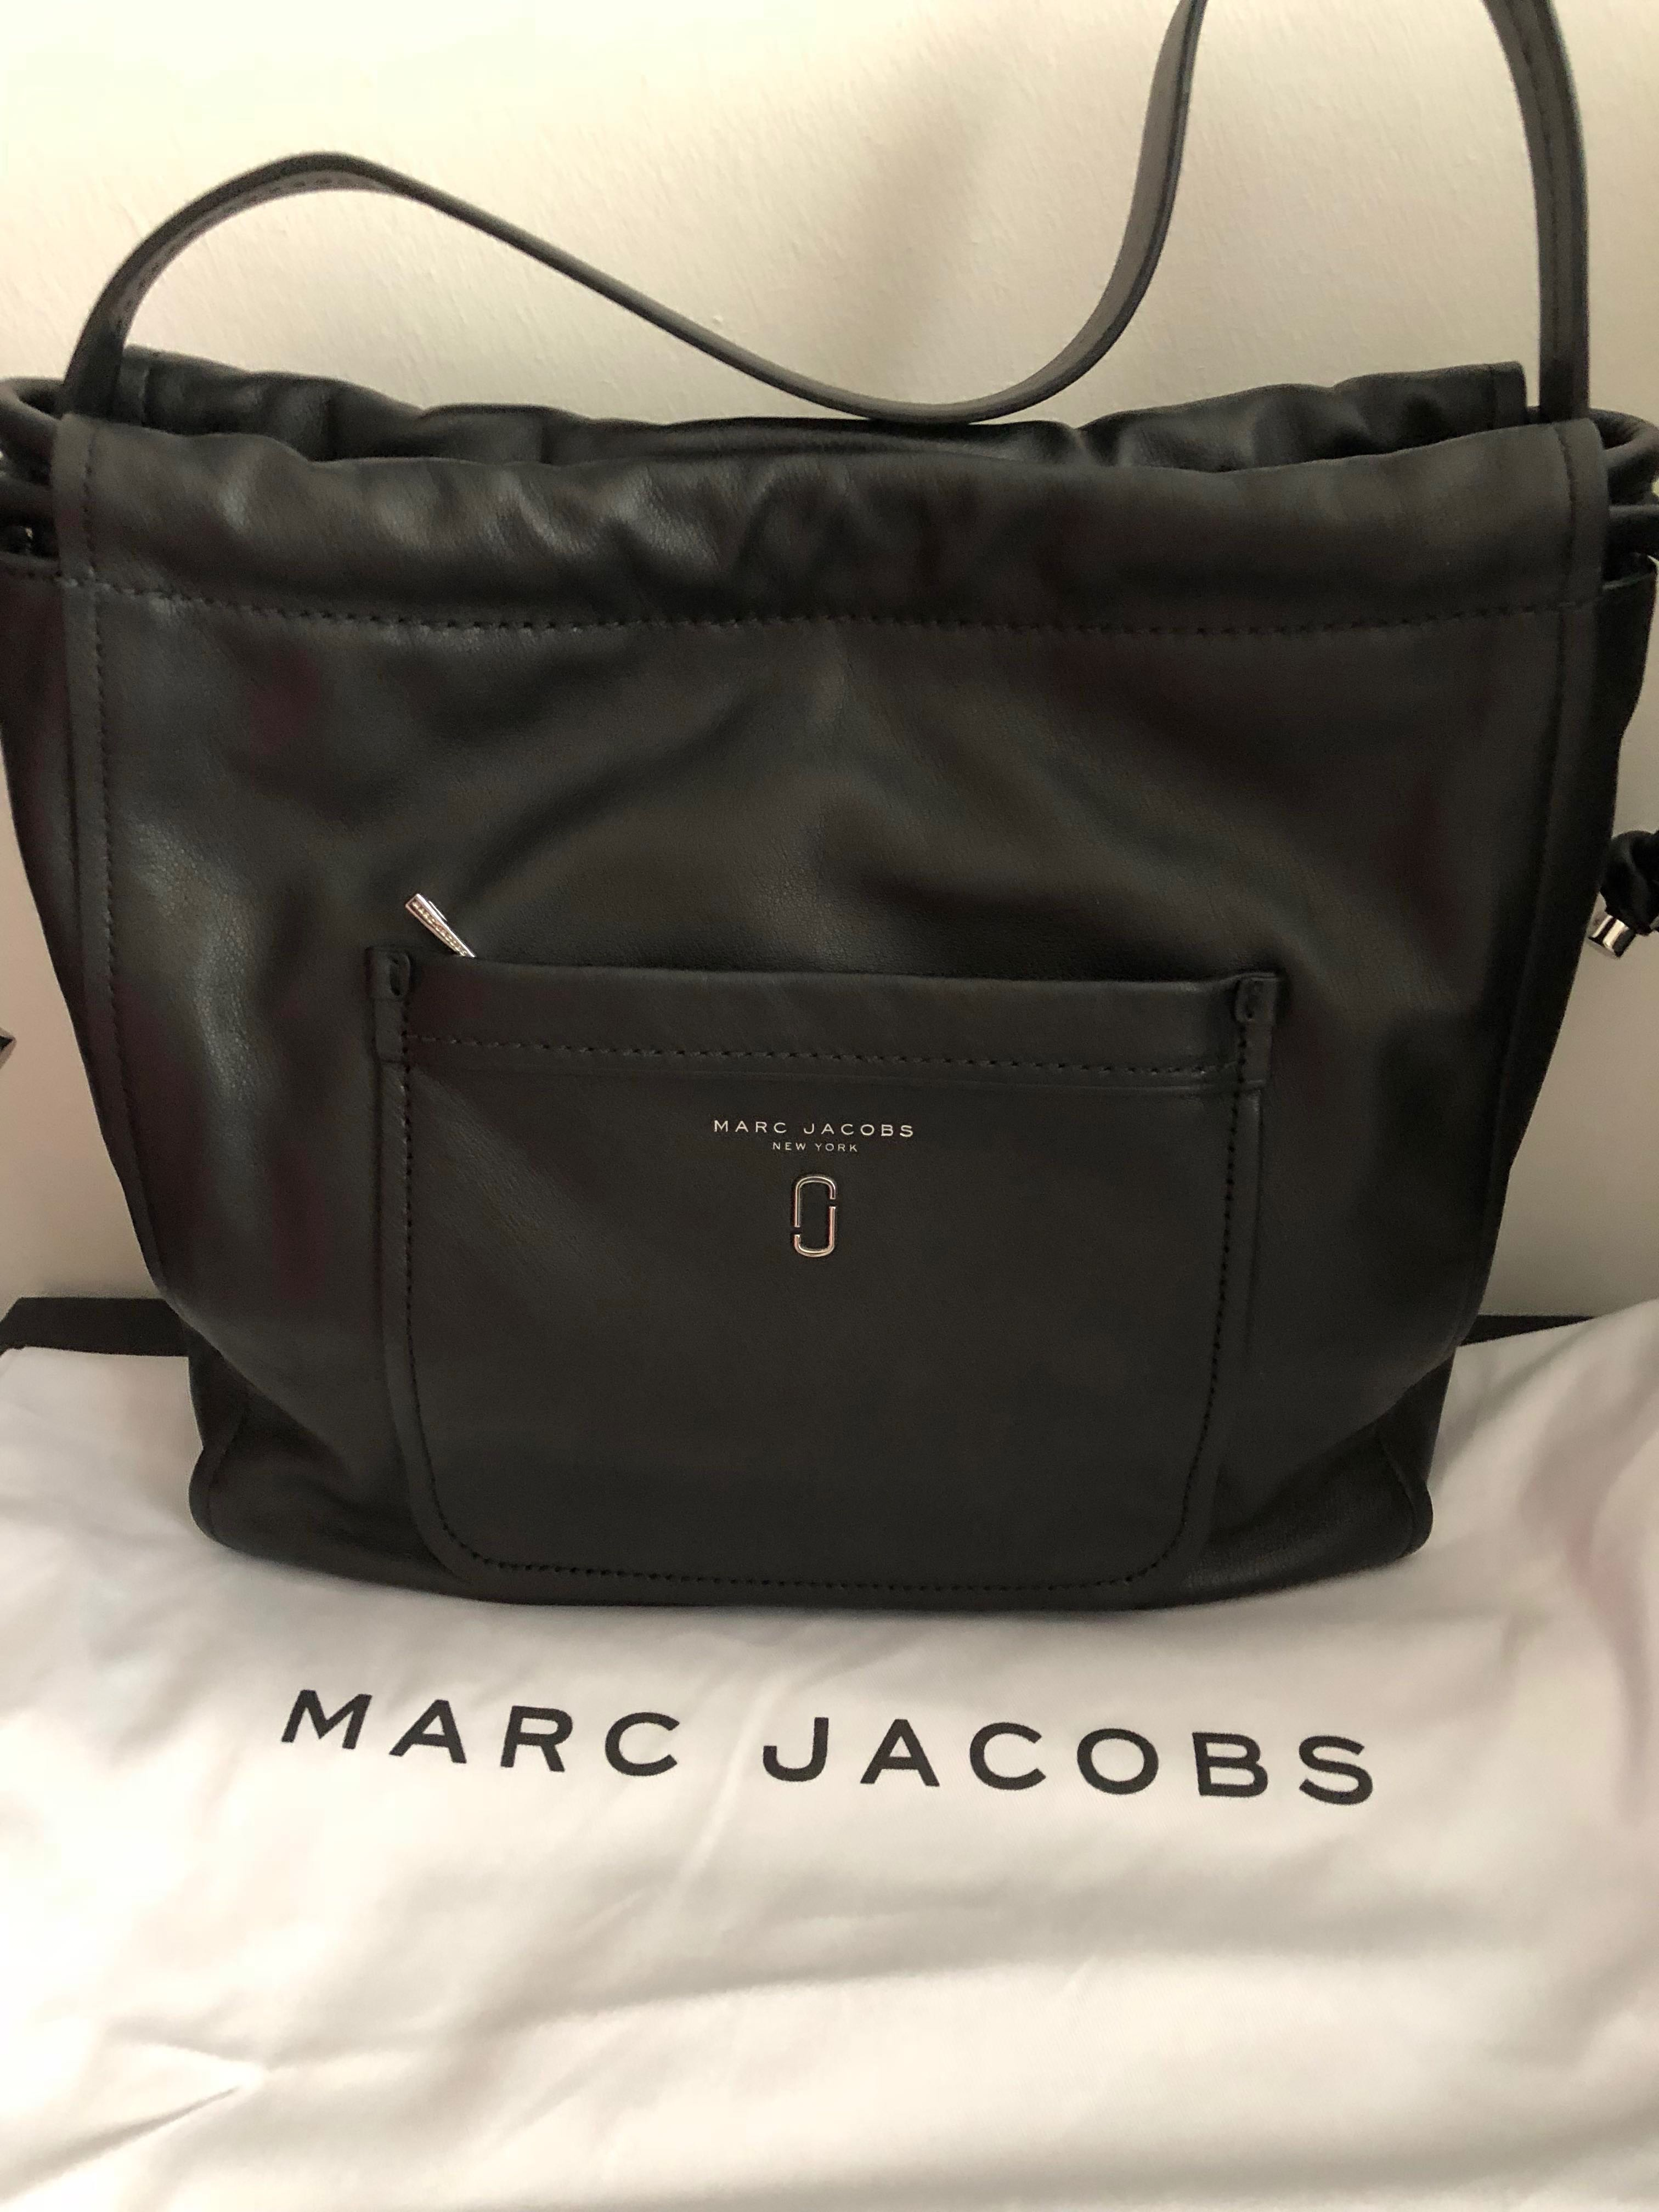 63fe75e8a38 Marc Jacobs Handbag, Women's Fashion, Bags & Wallets, Handbags on ...